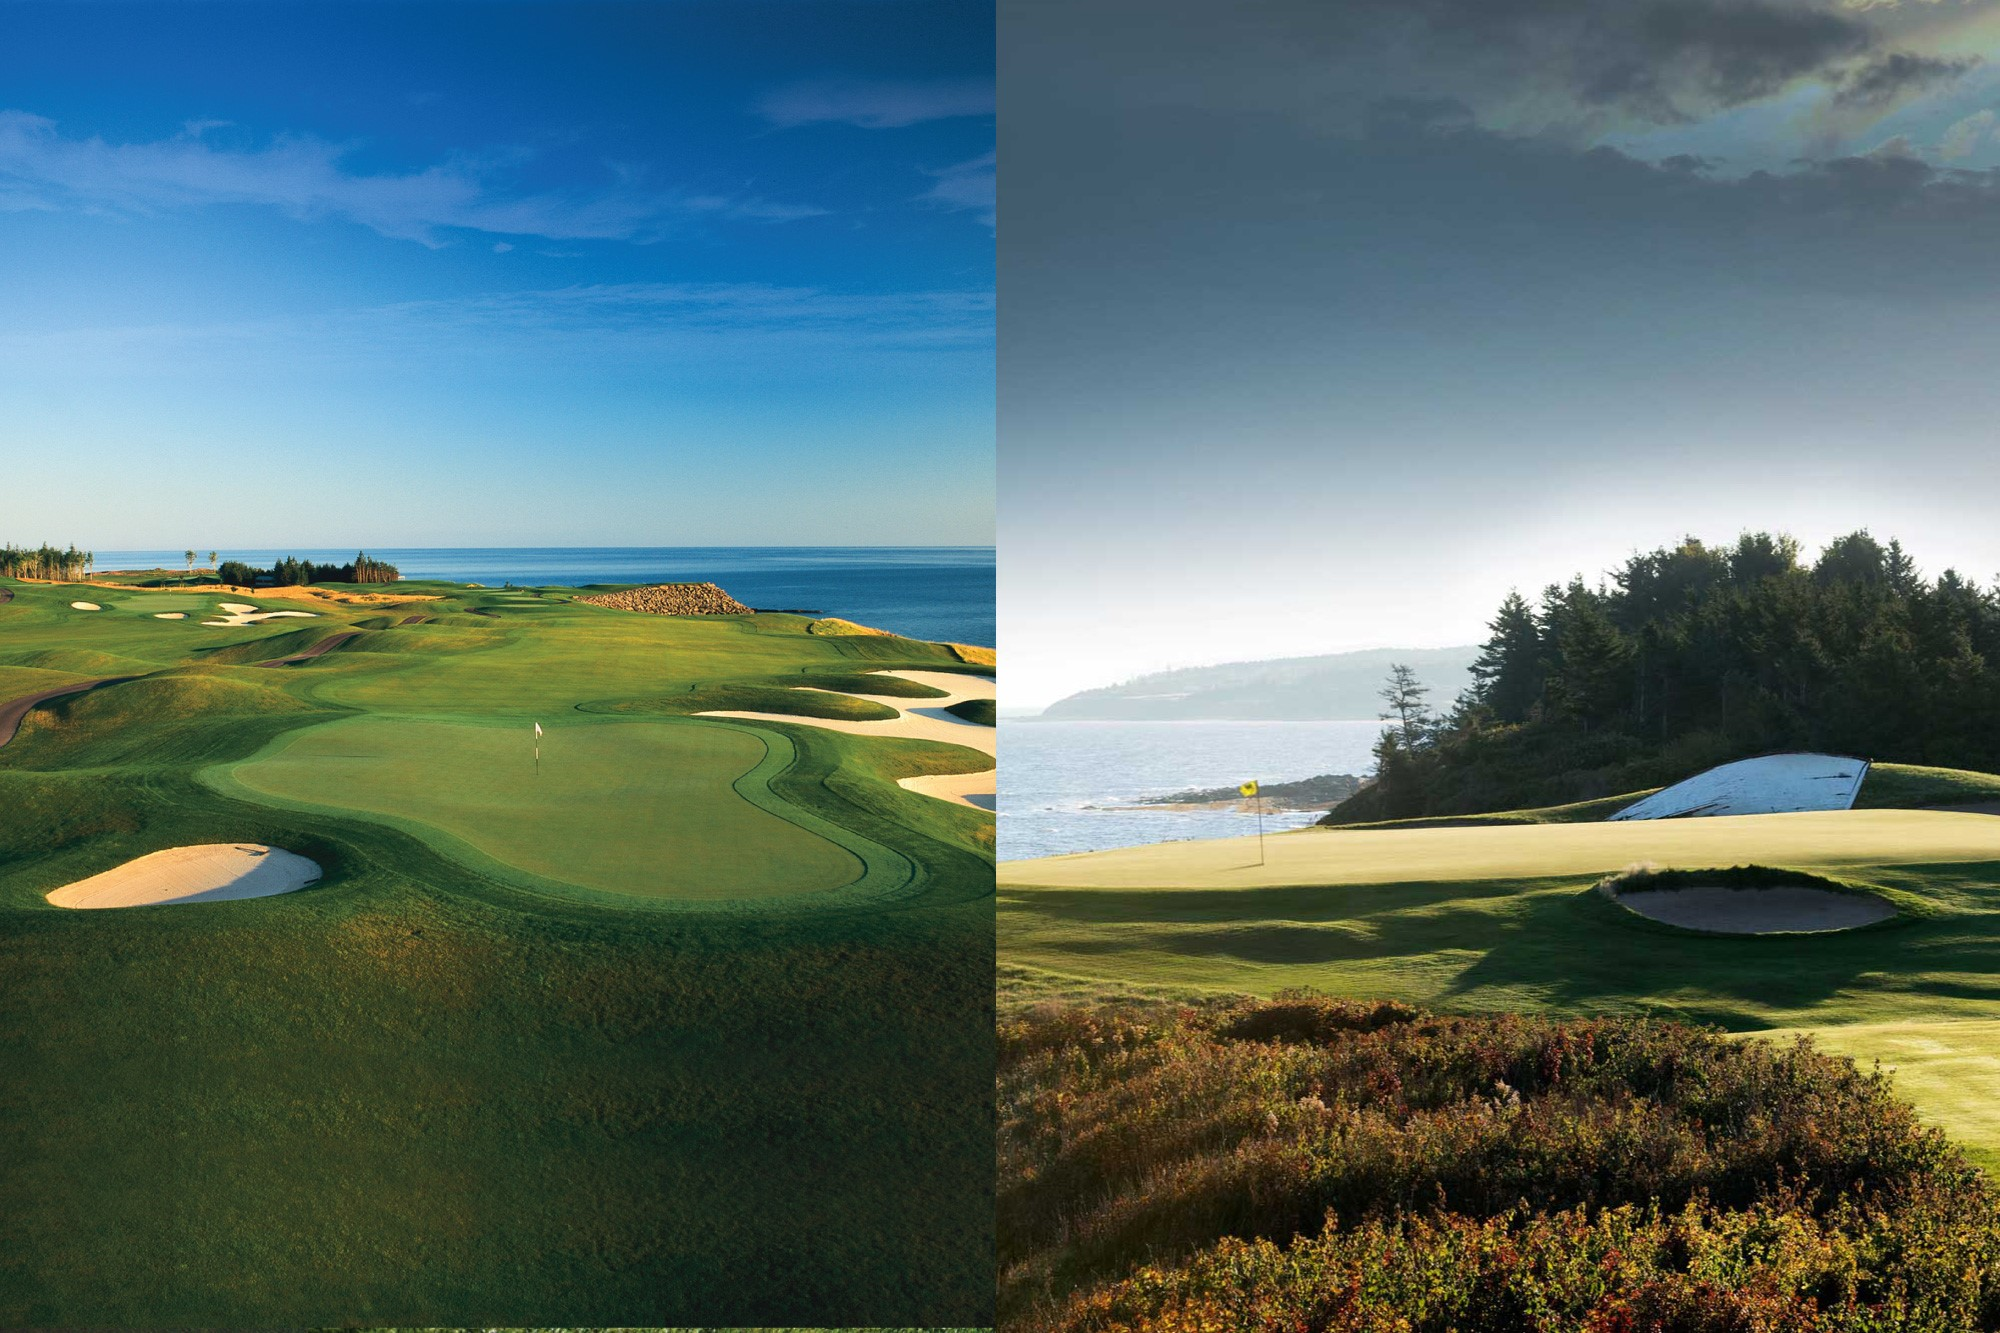 Both Golf Shores are played during the North Shore Open. Fox harb'r Resort and Northumberland Links